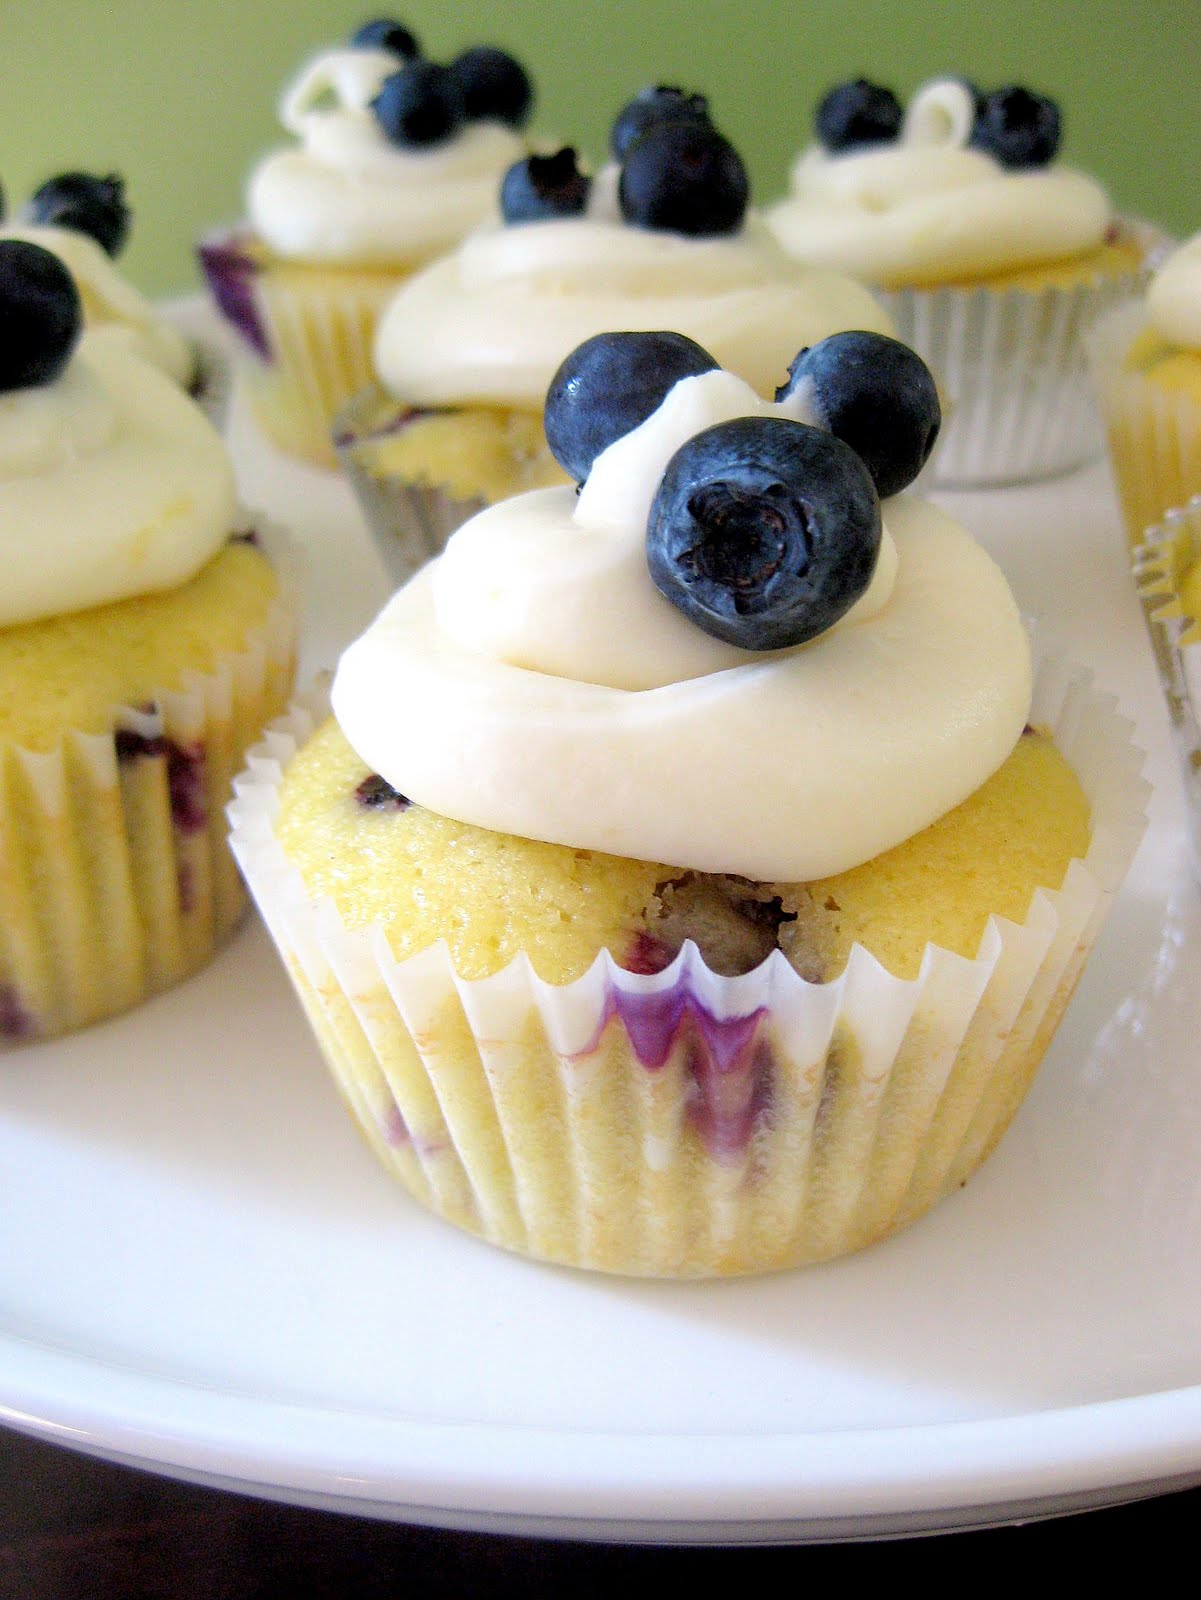 Blueberry Lemon Cupcakes with Lemon Cream Cheese Frosting | A Hint of ...